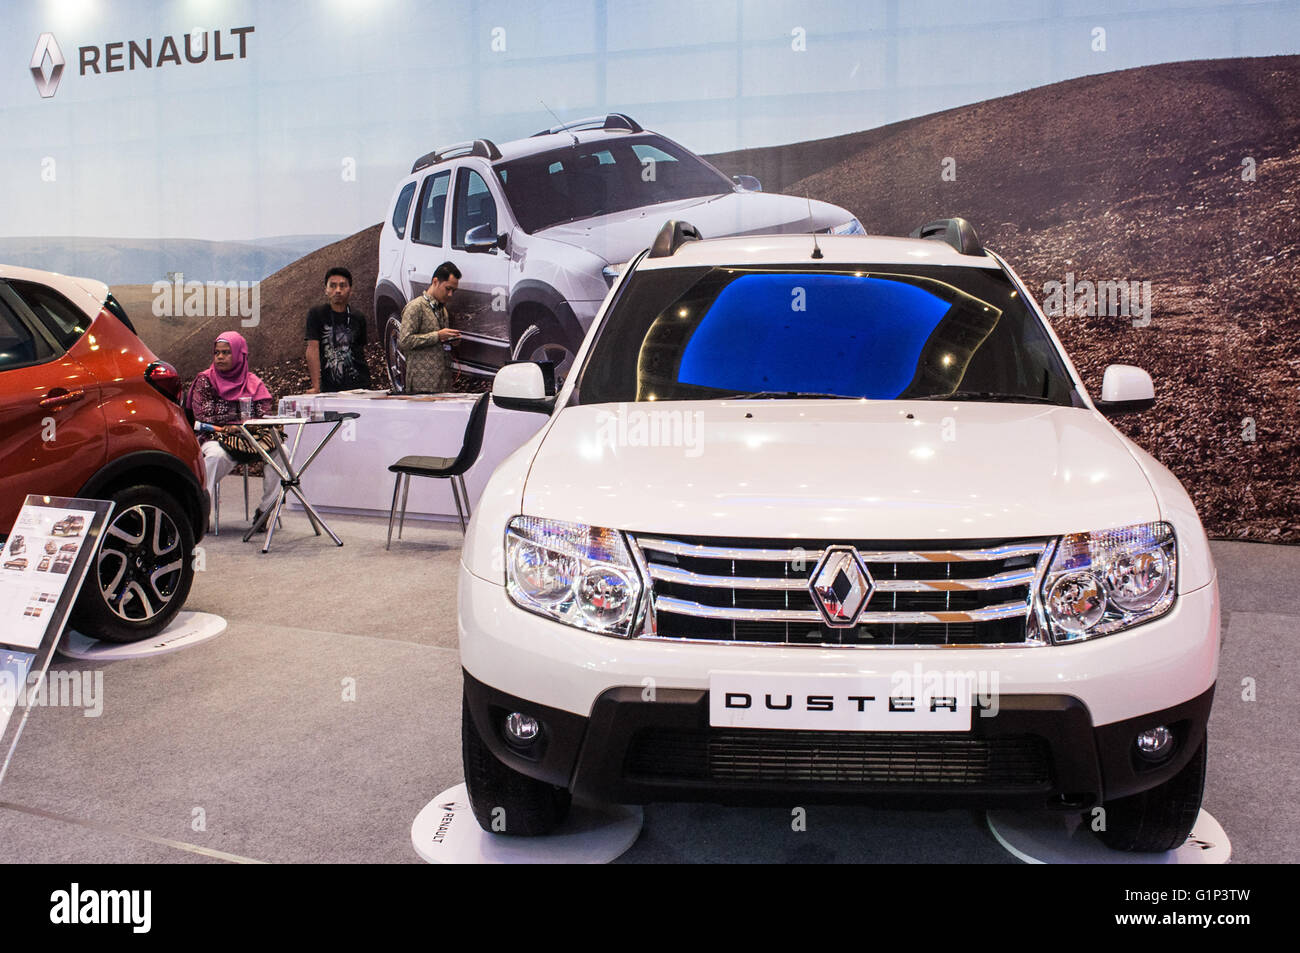 Makassar, Indonesia. 18th May, 2016. Renault exhibits the Duster series at GIIAS Makassar Autoshow in Makassar, - Stock Image